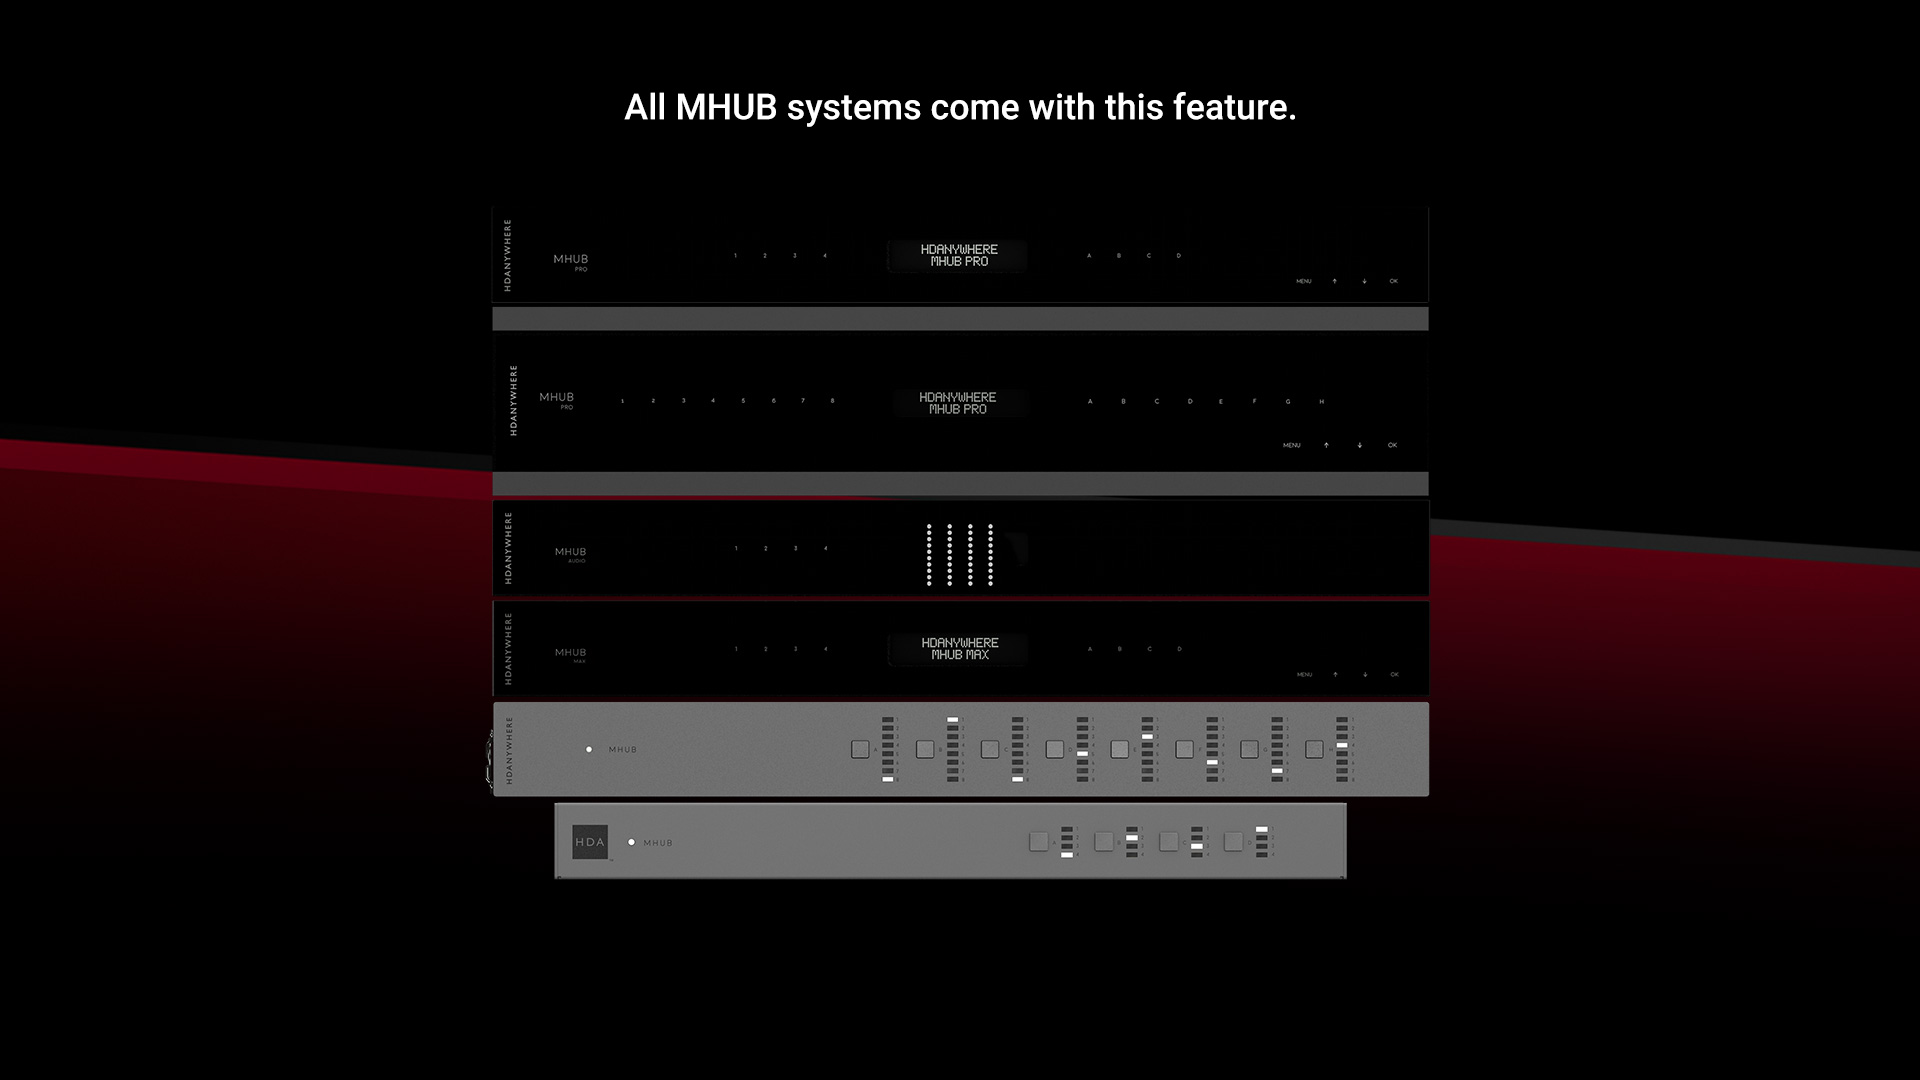 Available on all MHUB systems